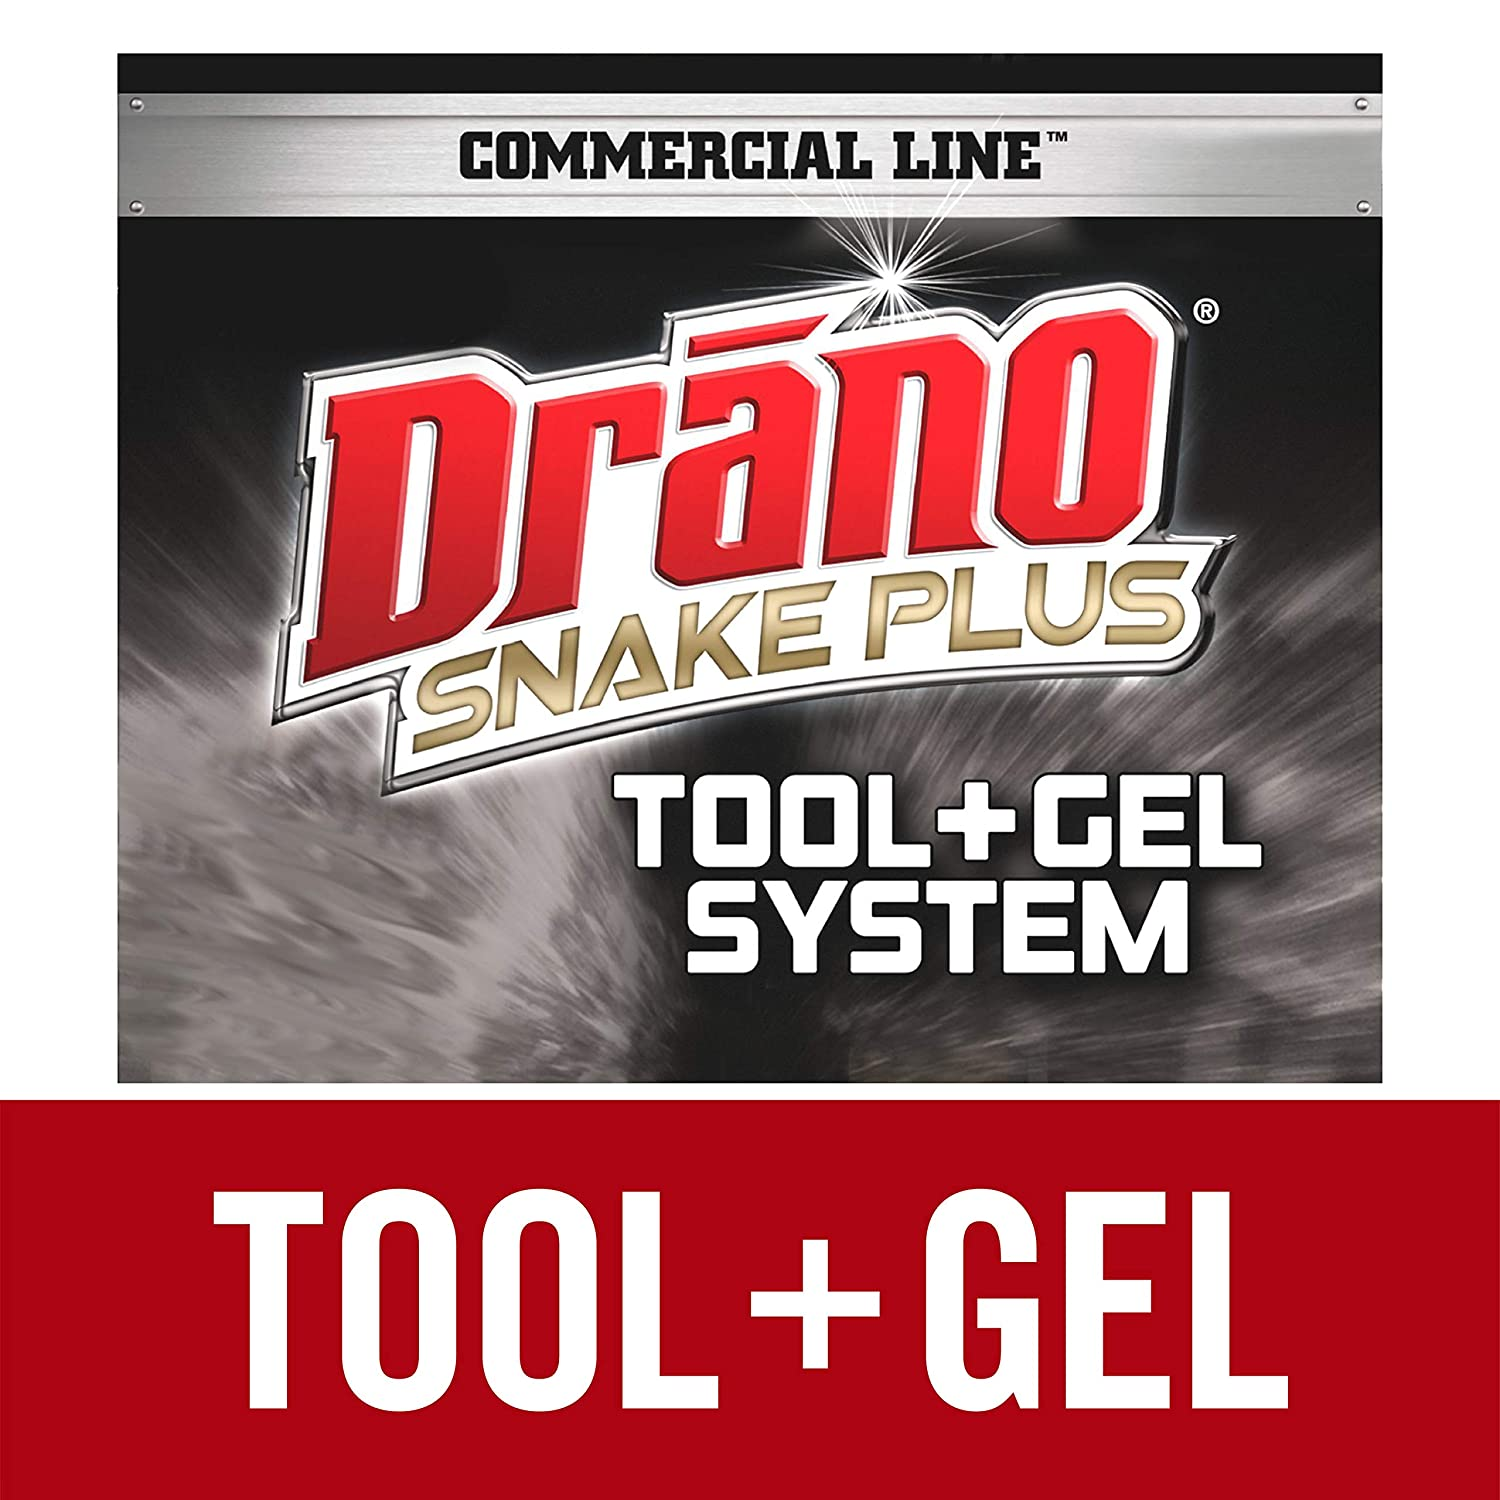 Drano Snake Plus Tool + Gel System, Commercial Line Windex 19800702410